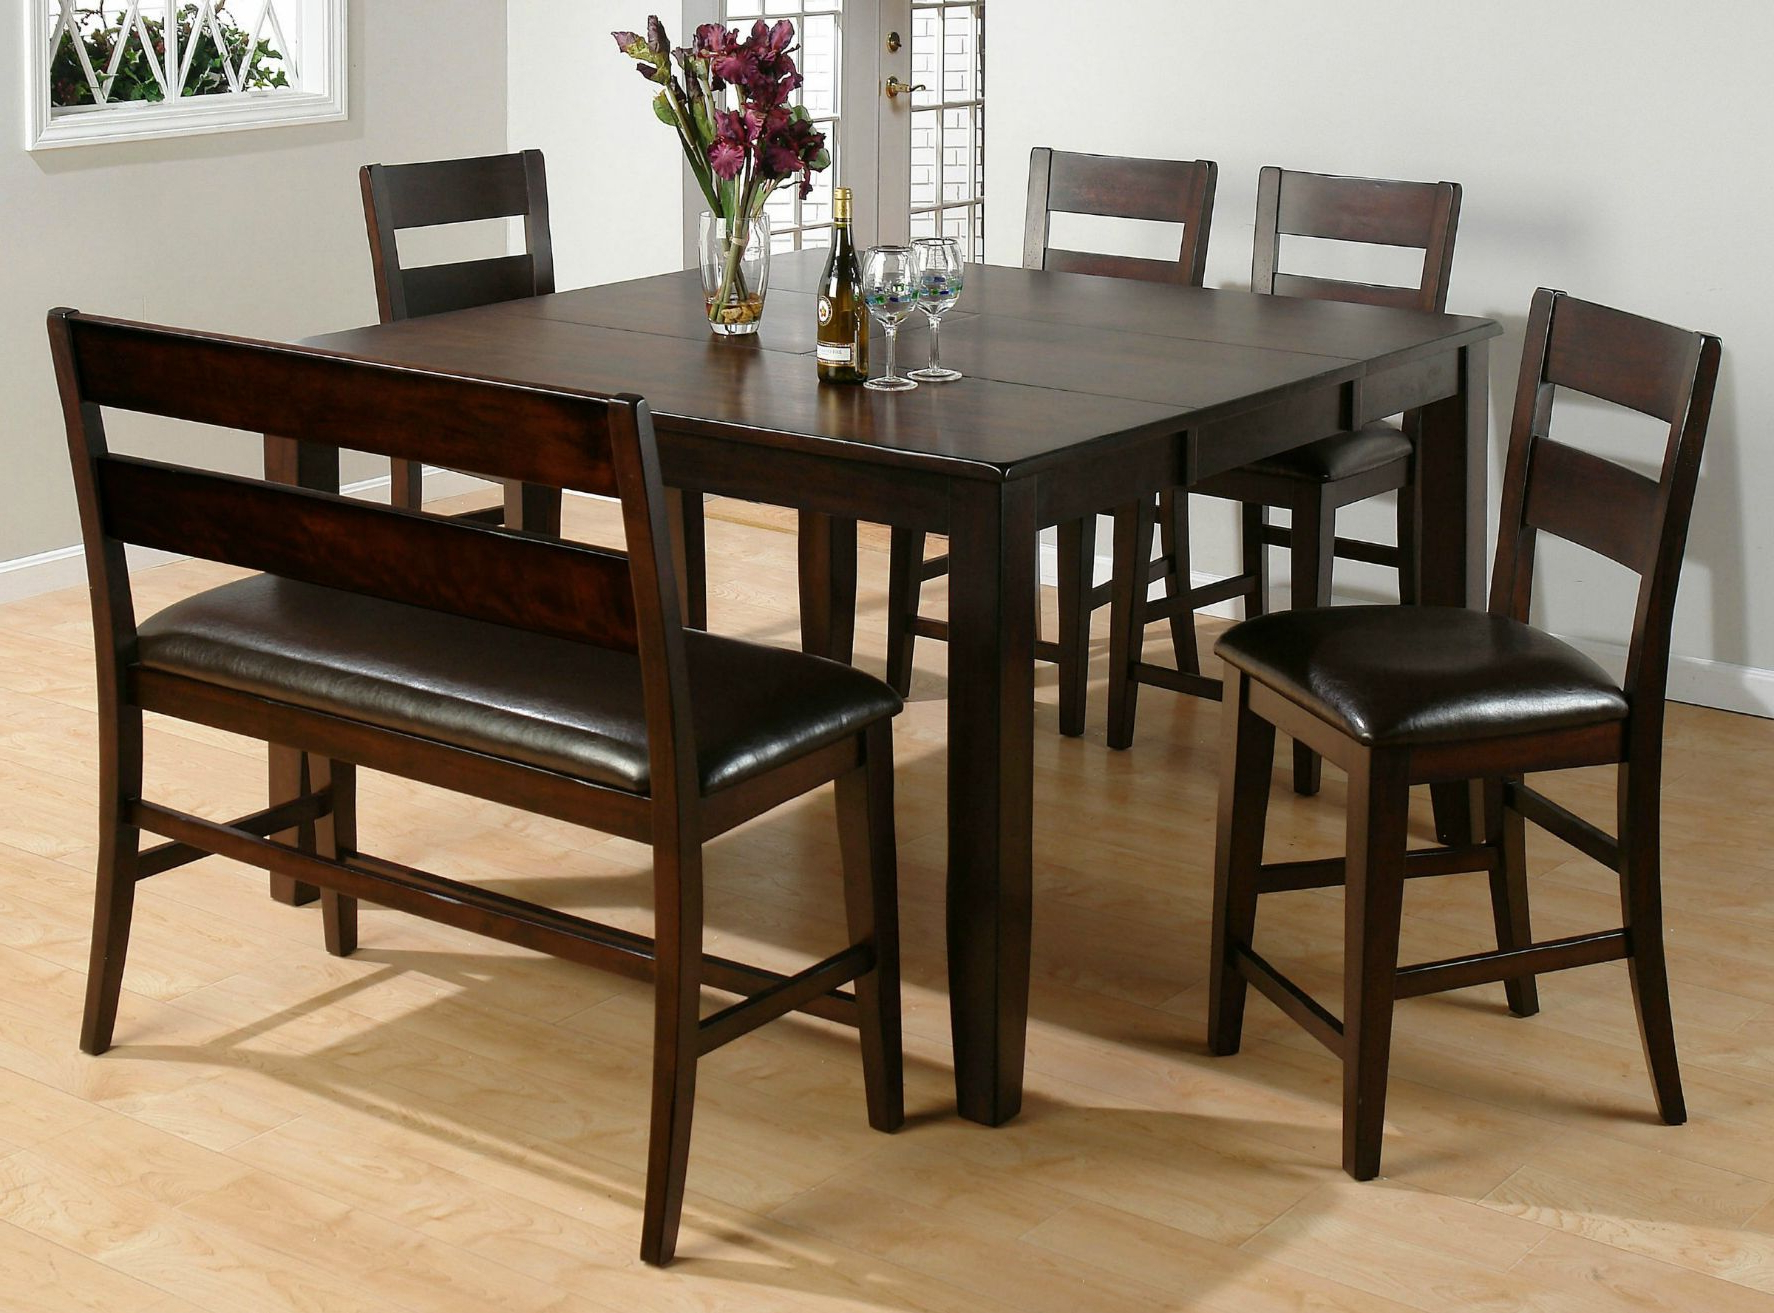 Fashionable Transitional 4 Seating Drop Leaf Casual Dining Tables Regarding 26 Dining Room Sets (Big And Small) With Bench Seating ( (View 7 of 30)